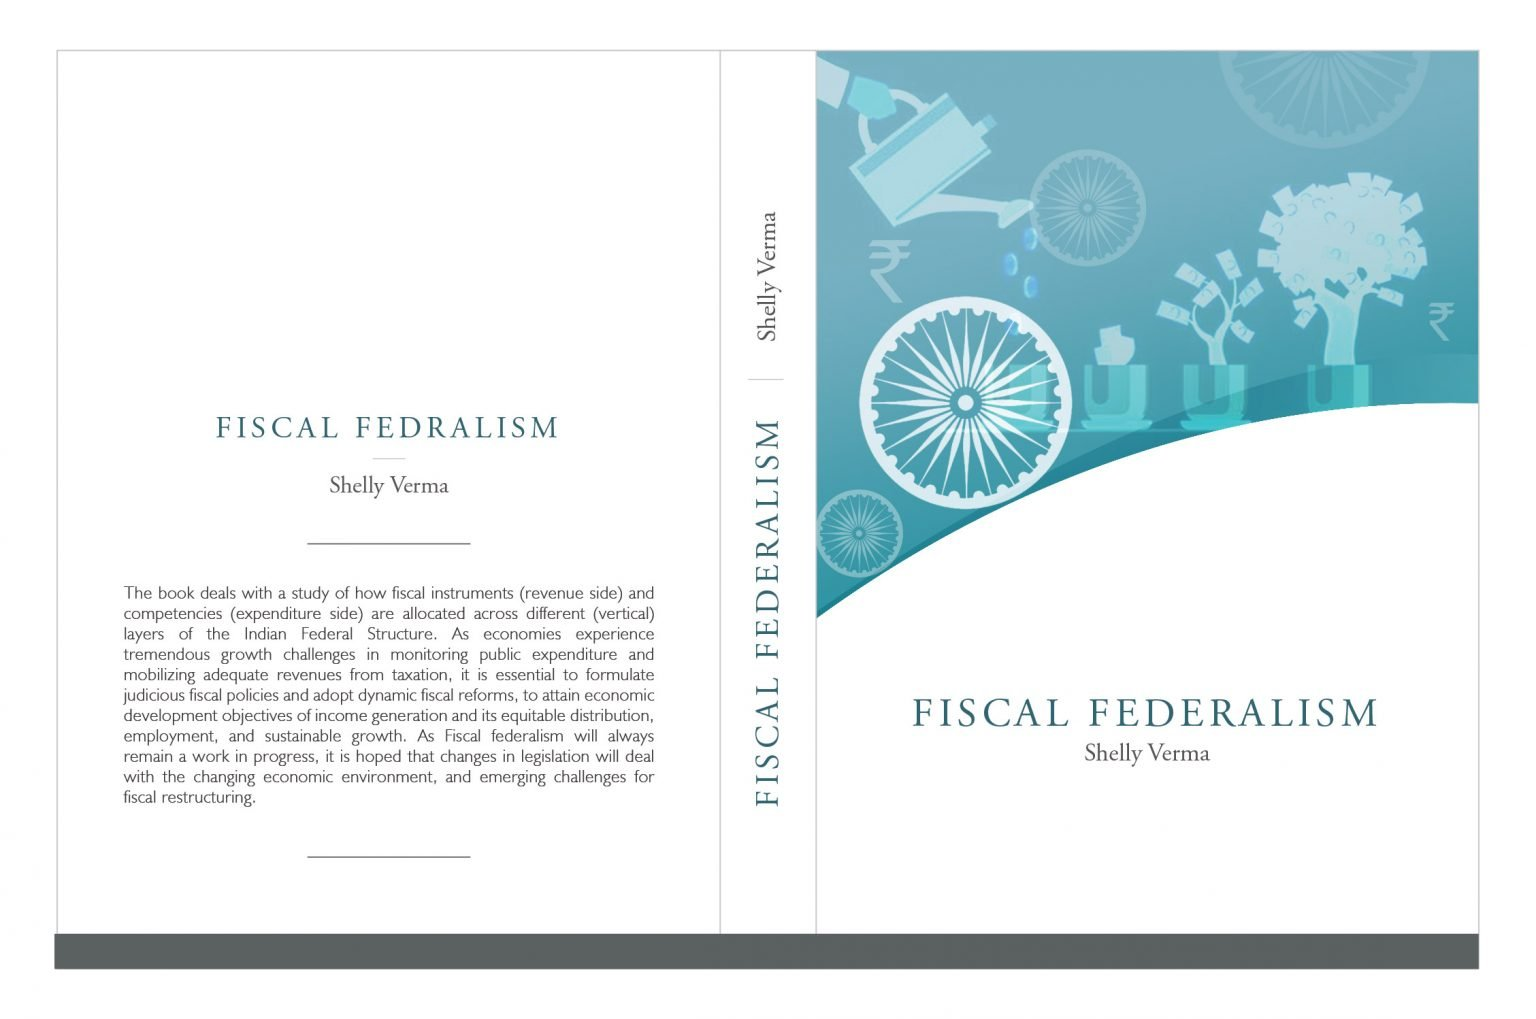 Fiscal_fedralism_book_cover_revised-01